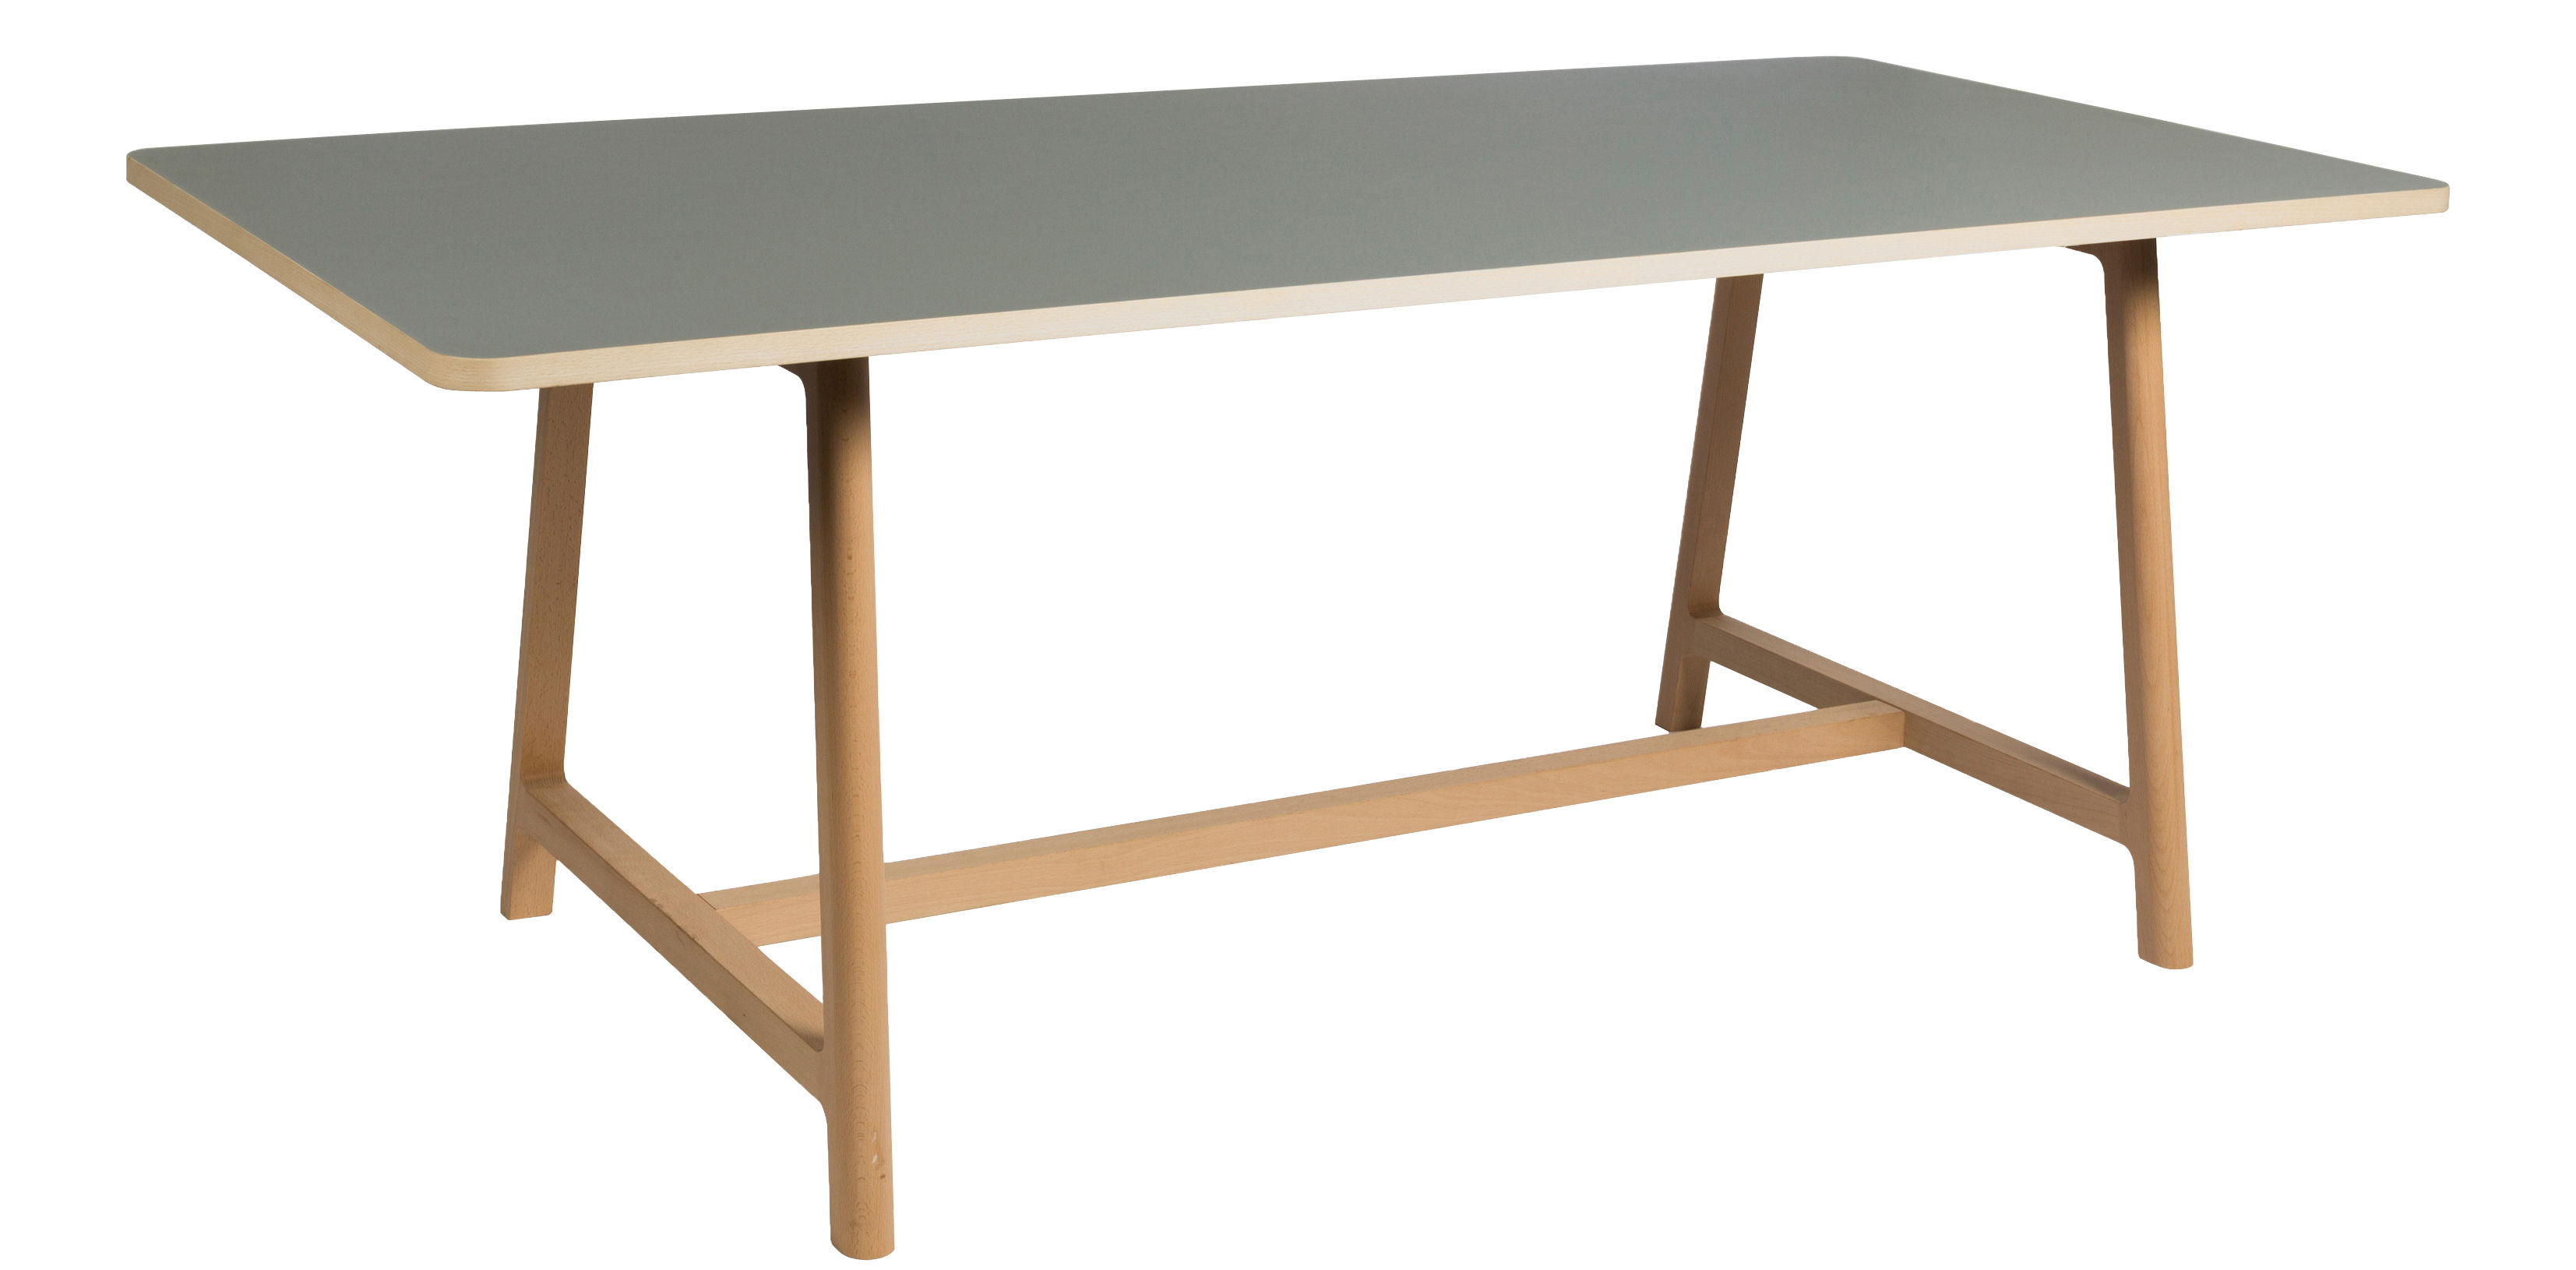 Frame Table L 200 cm / Grey top & natural wood by Hay